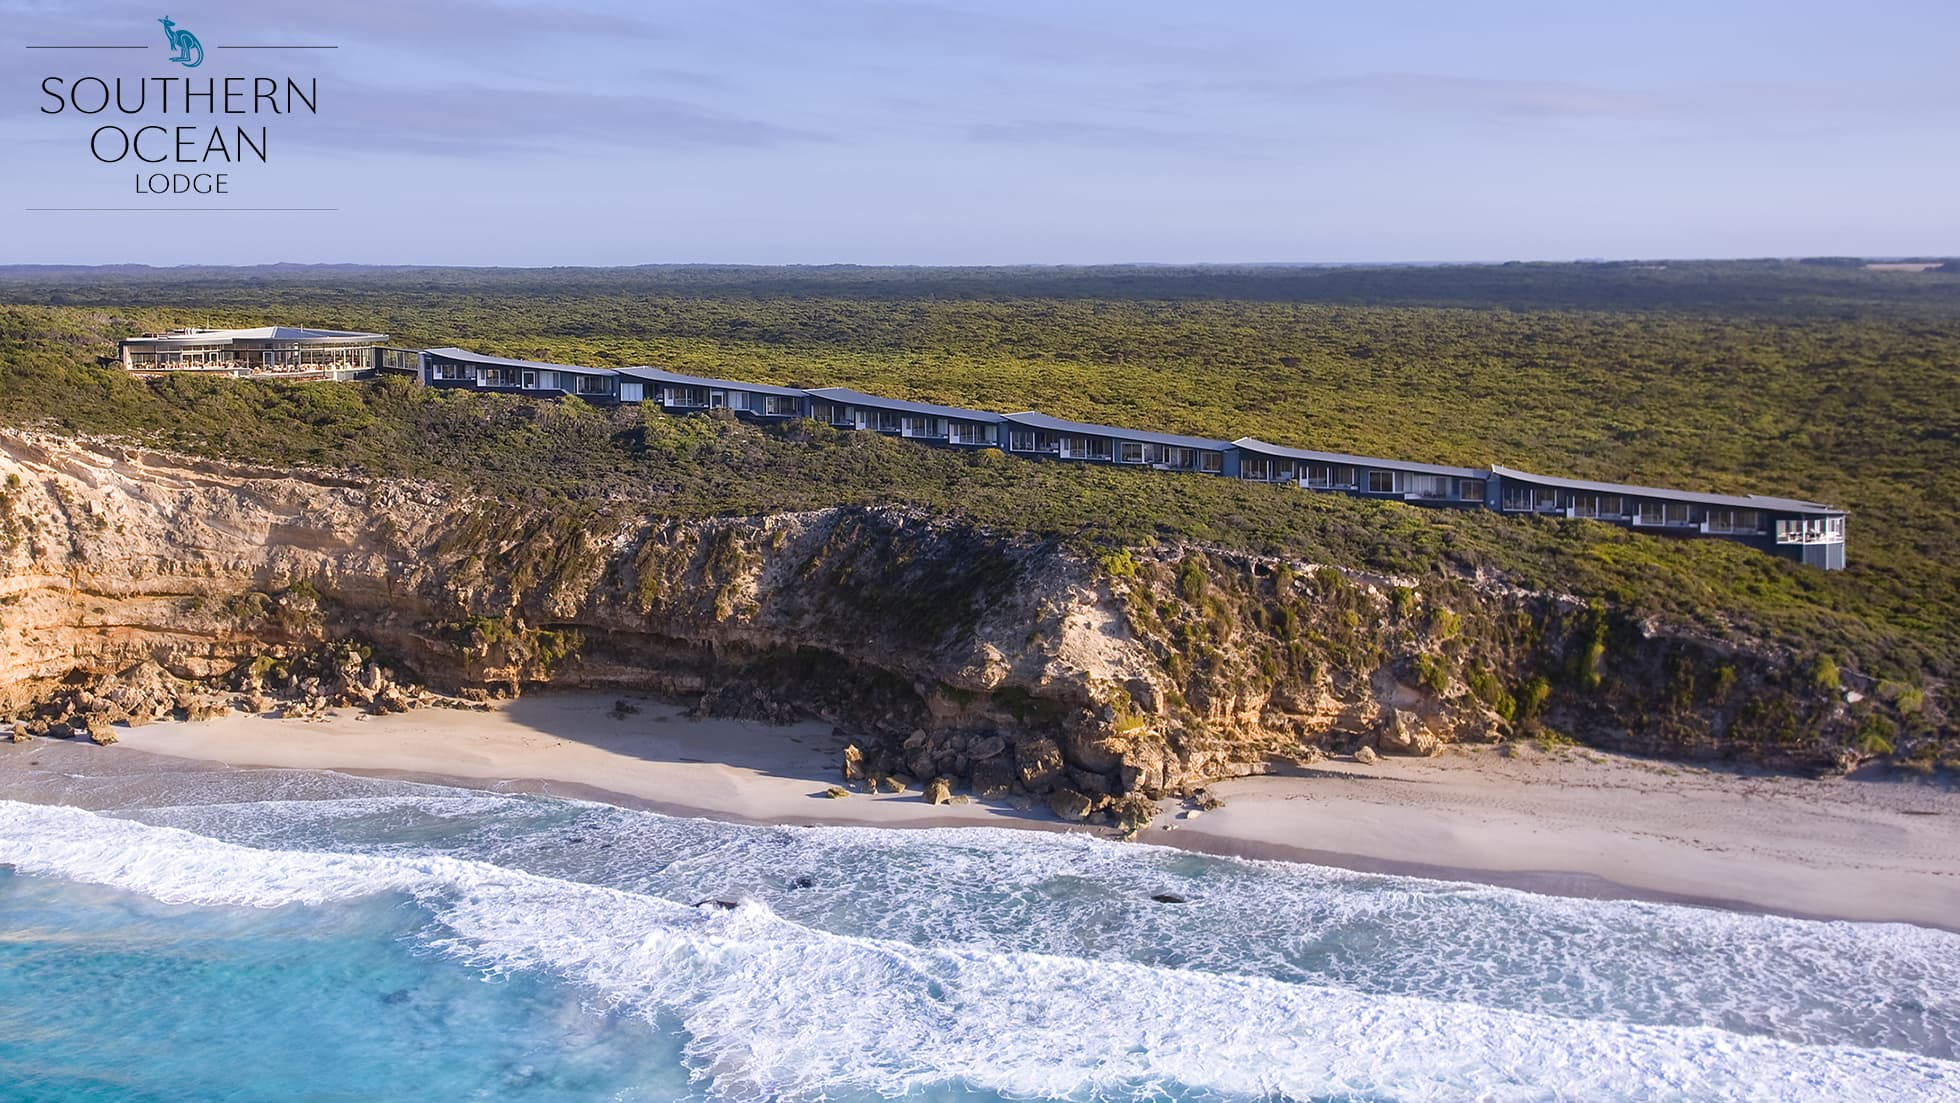 Southern Ocean Lodge Review, Kangaroo Island S.A.